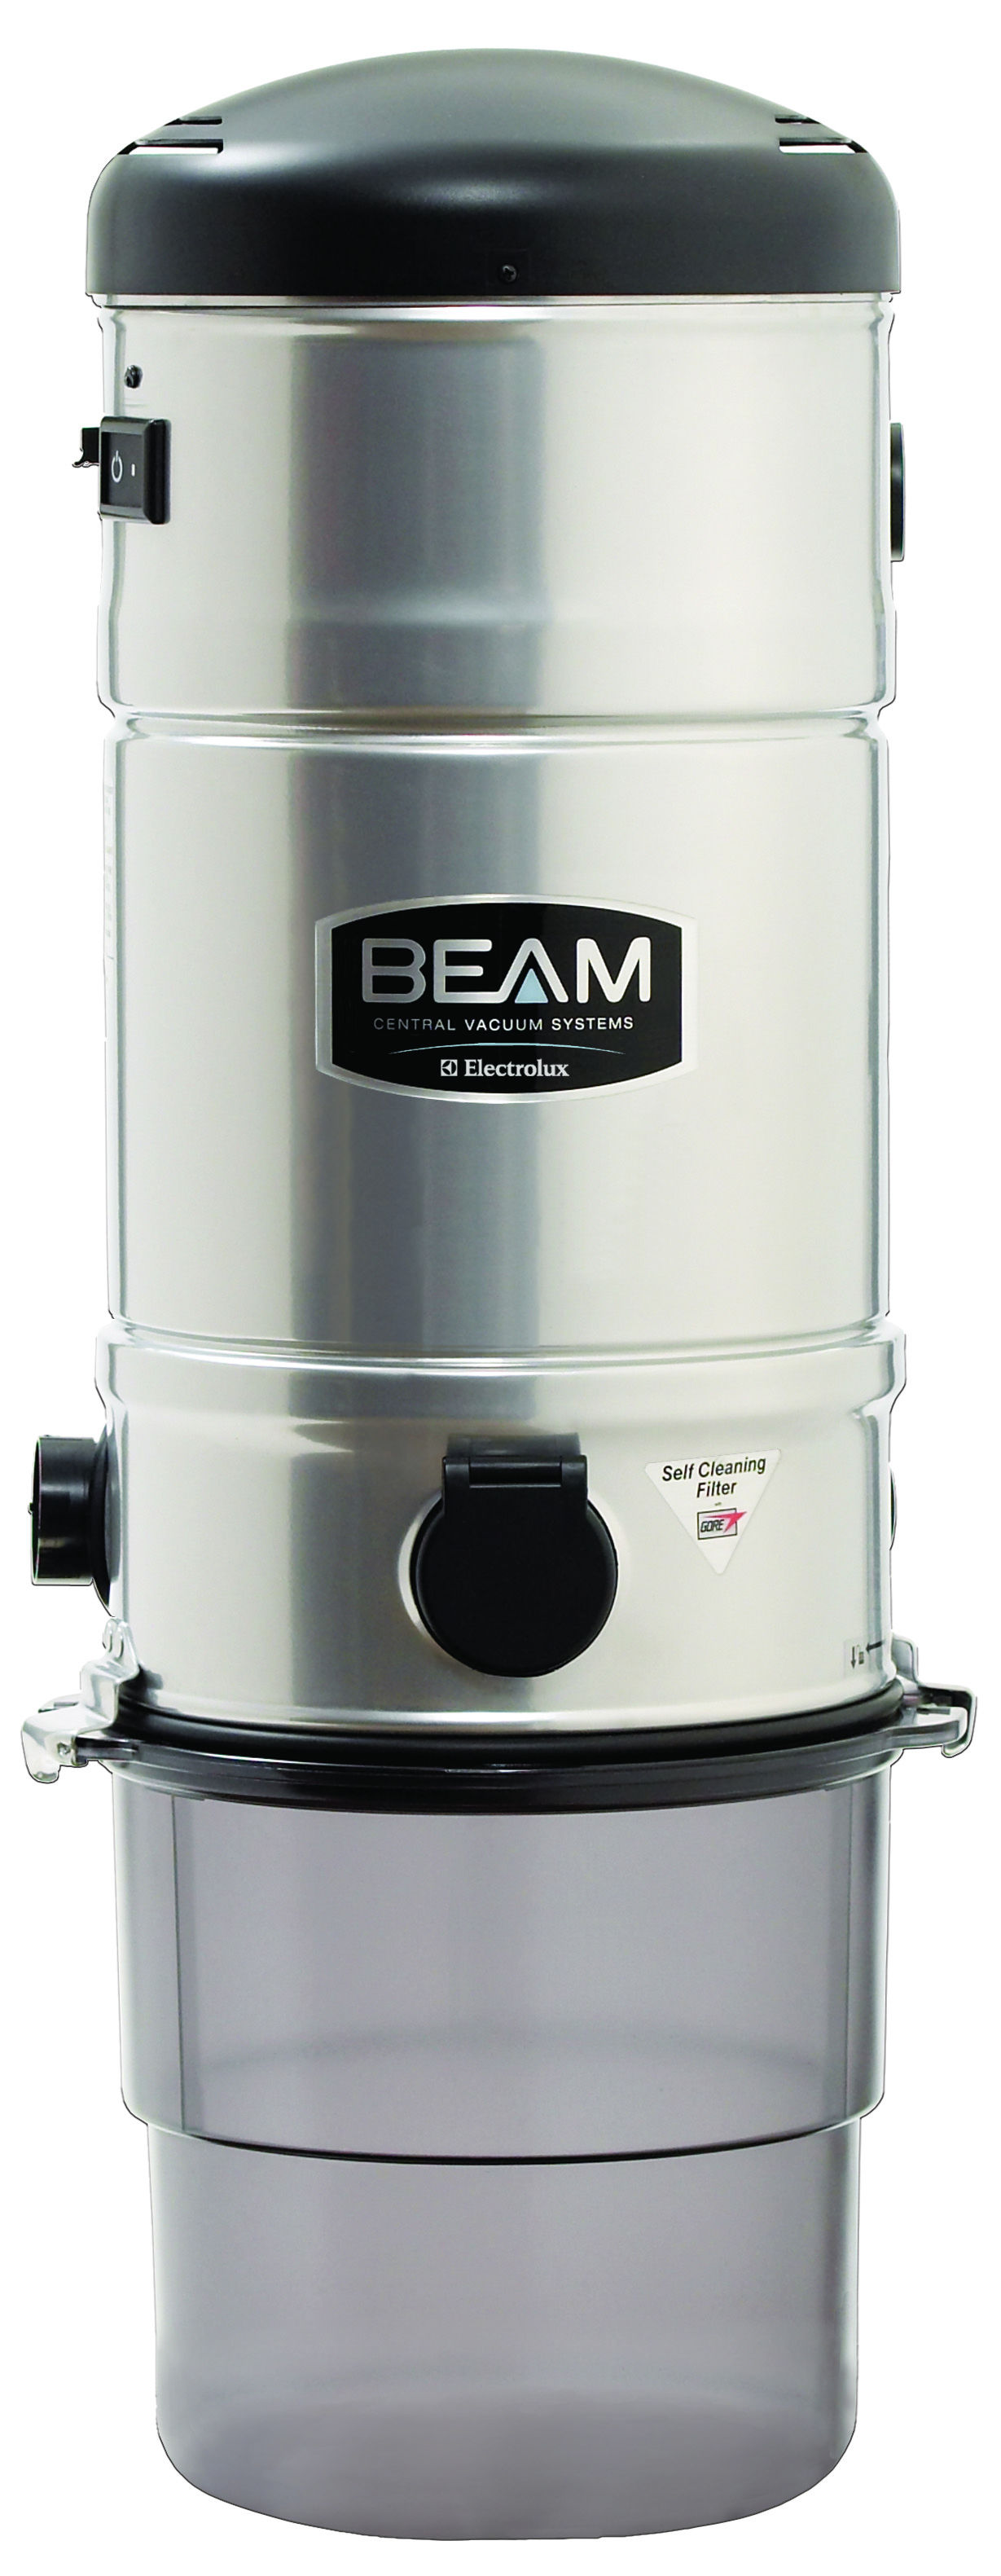 BEAM PLATINUM 335 DUCTED CENTRAL VACUUM CLEANER SYSTEM45 METERS SERVICE DISTANCE 5 YEAR